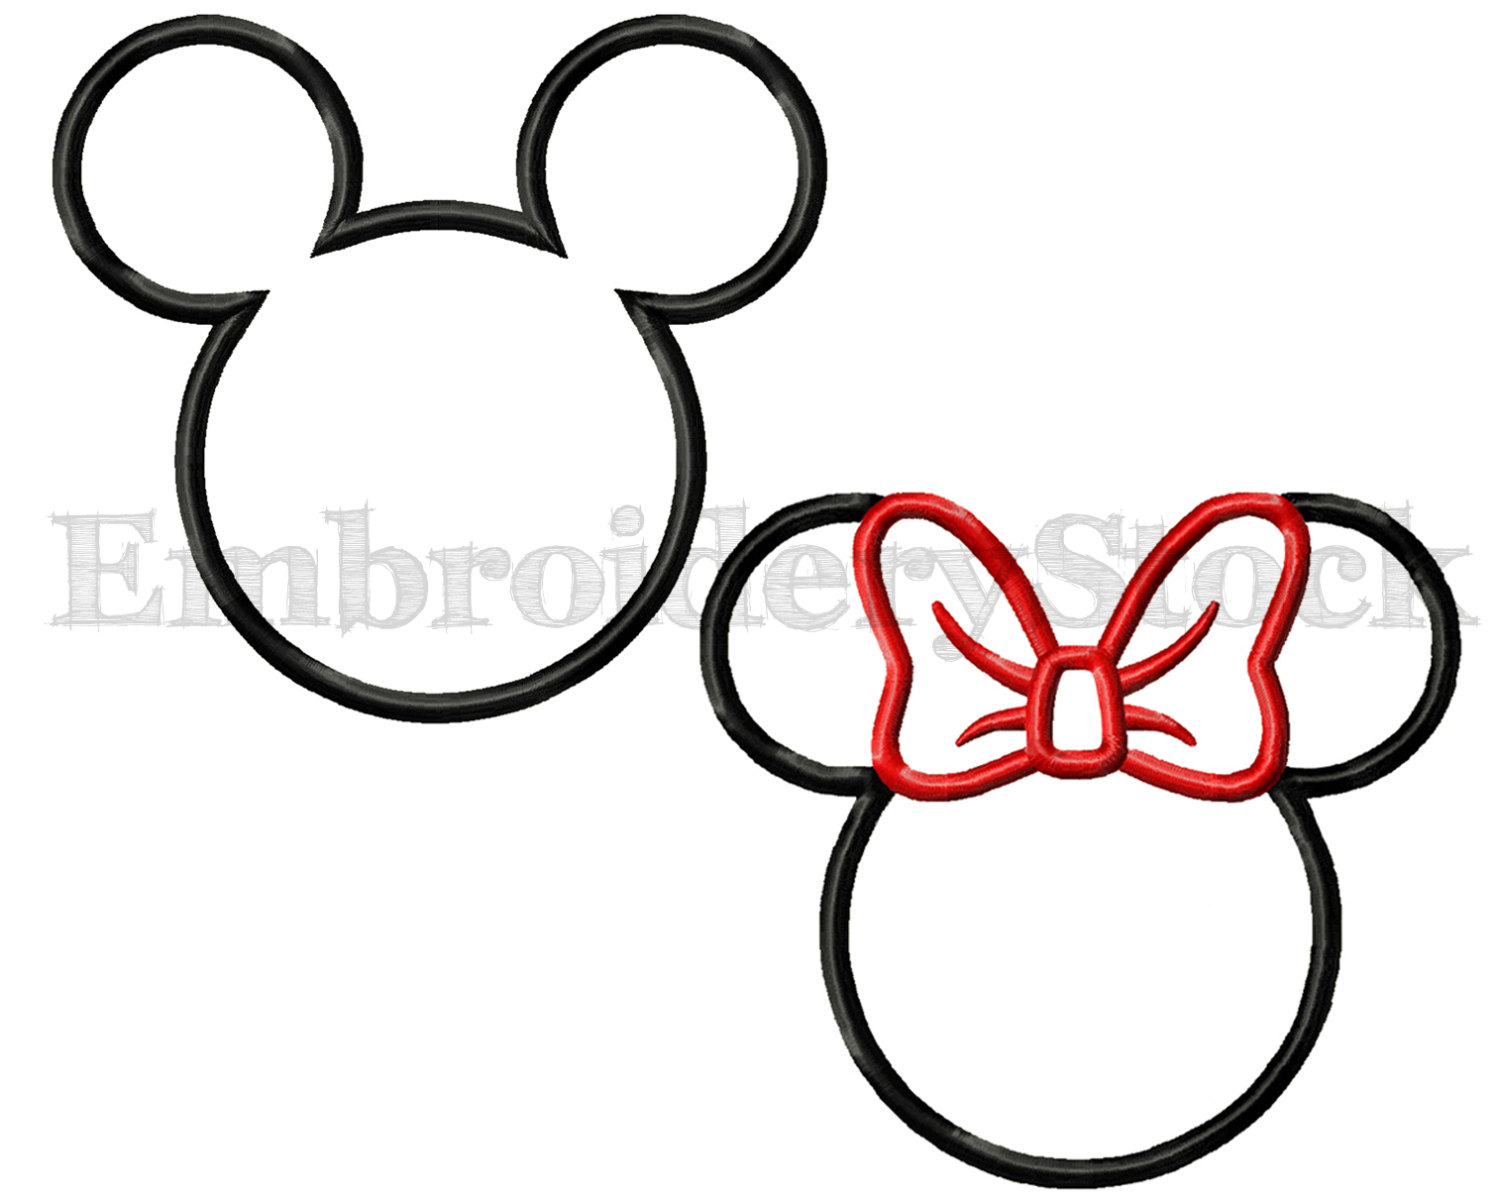 Teacup mickey head black and white clipart free Collection of Applique clipart | Free download best Applique ... free